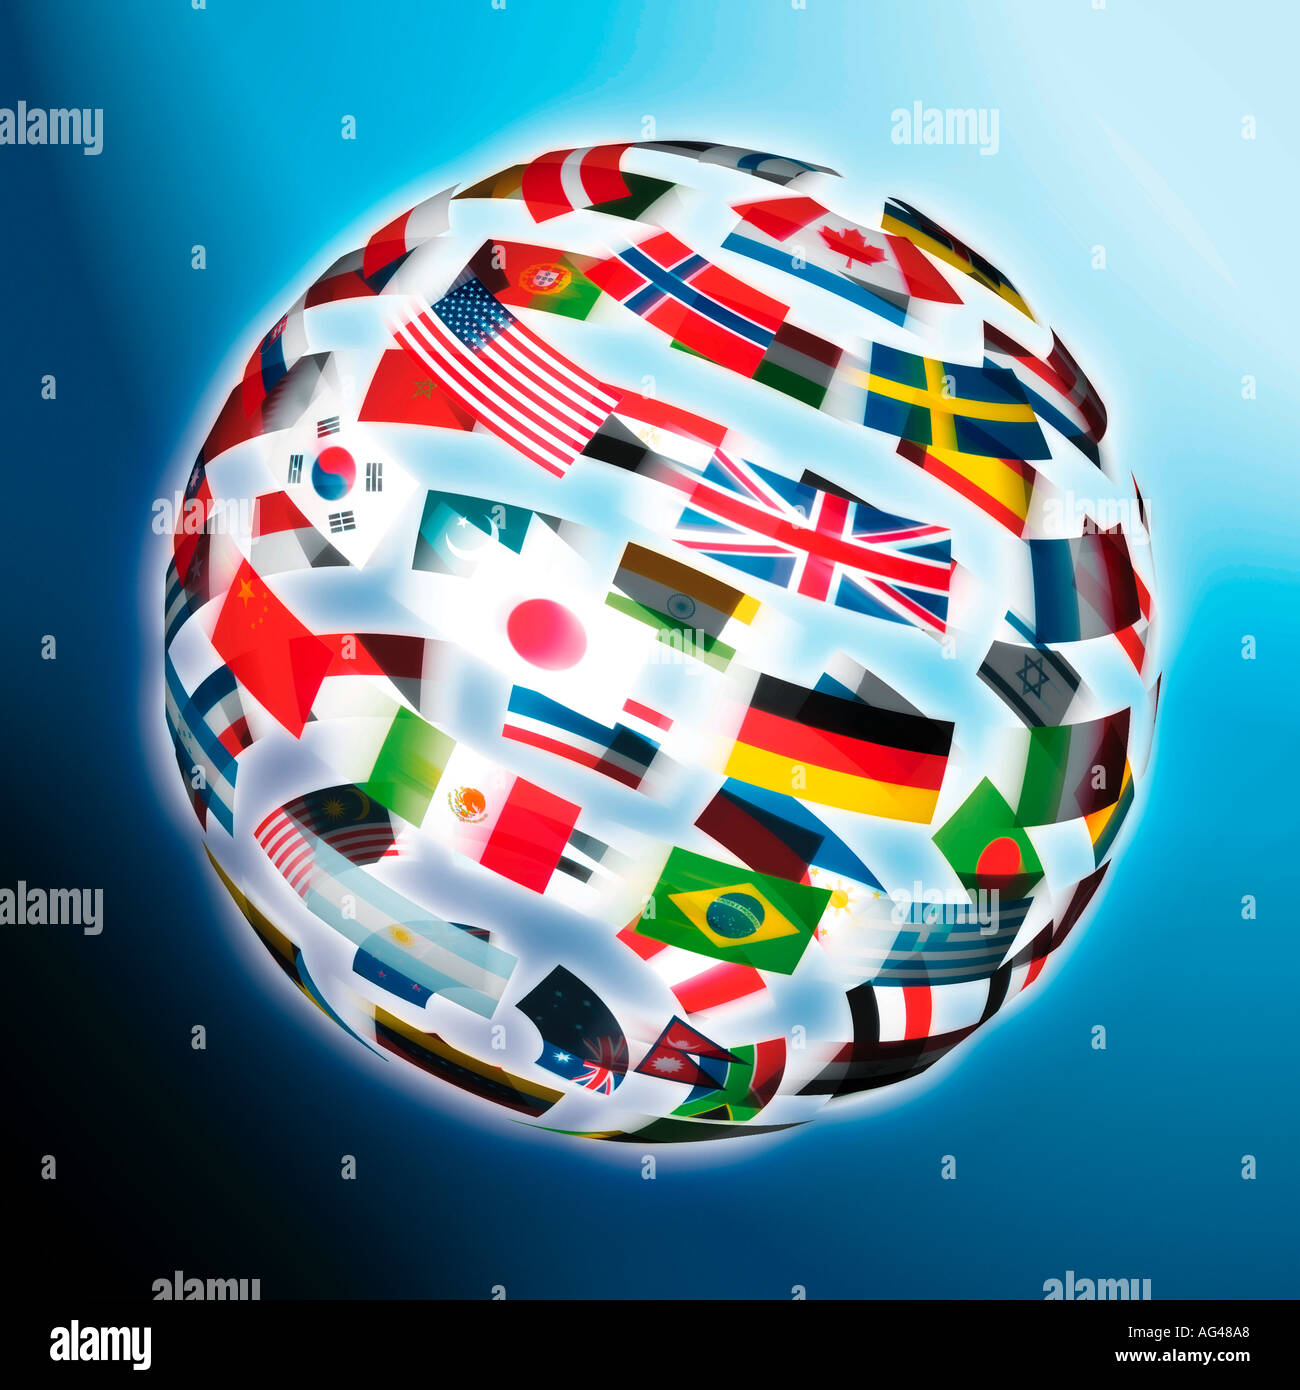 International Flags in the shape of a globe against a blue background. Flag World. - Stock Image